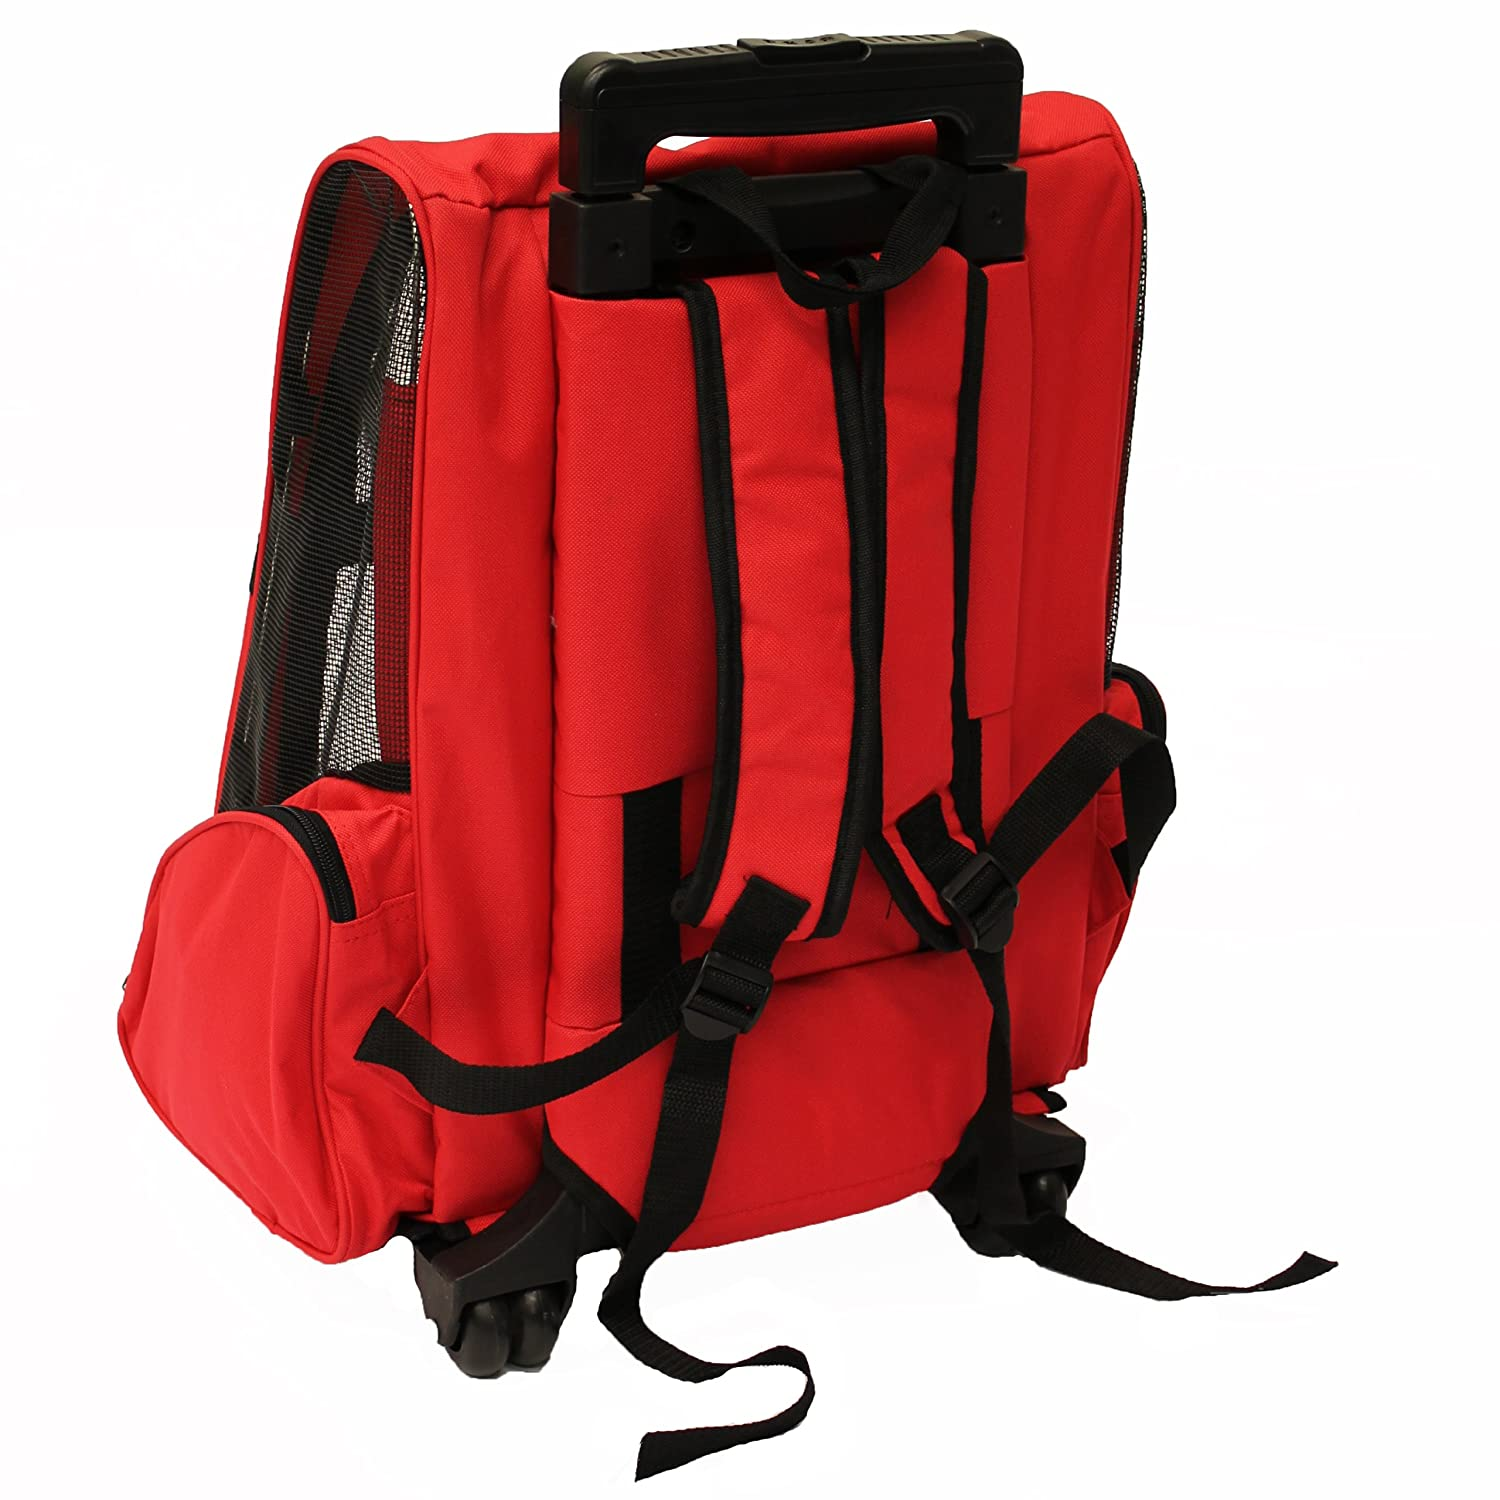 54c5c2b4ce2b Mool Pet Carrier Backpack with Integrated Trolley and Telescopic Handle